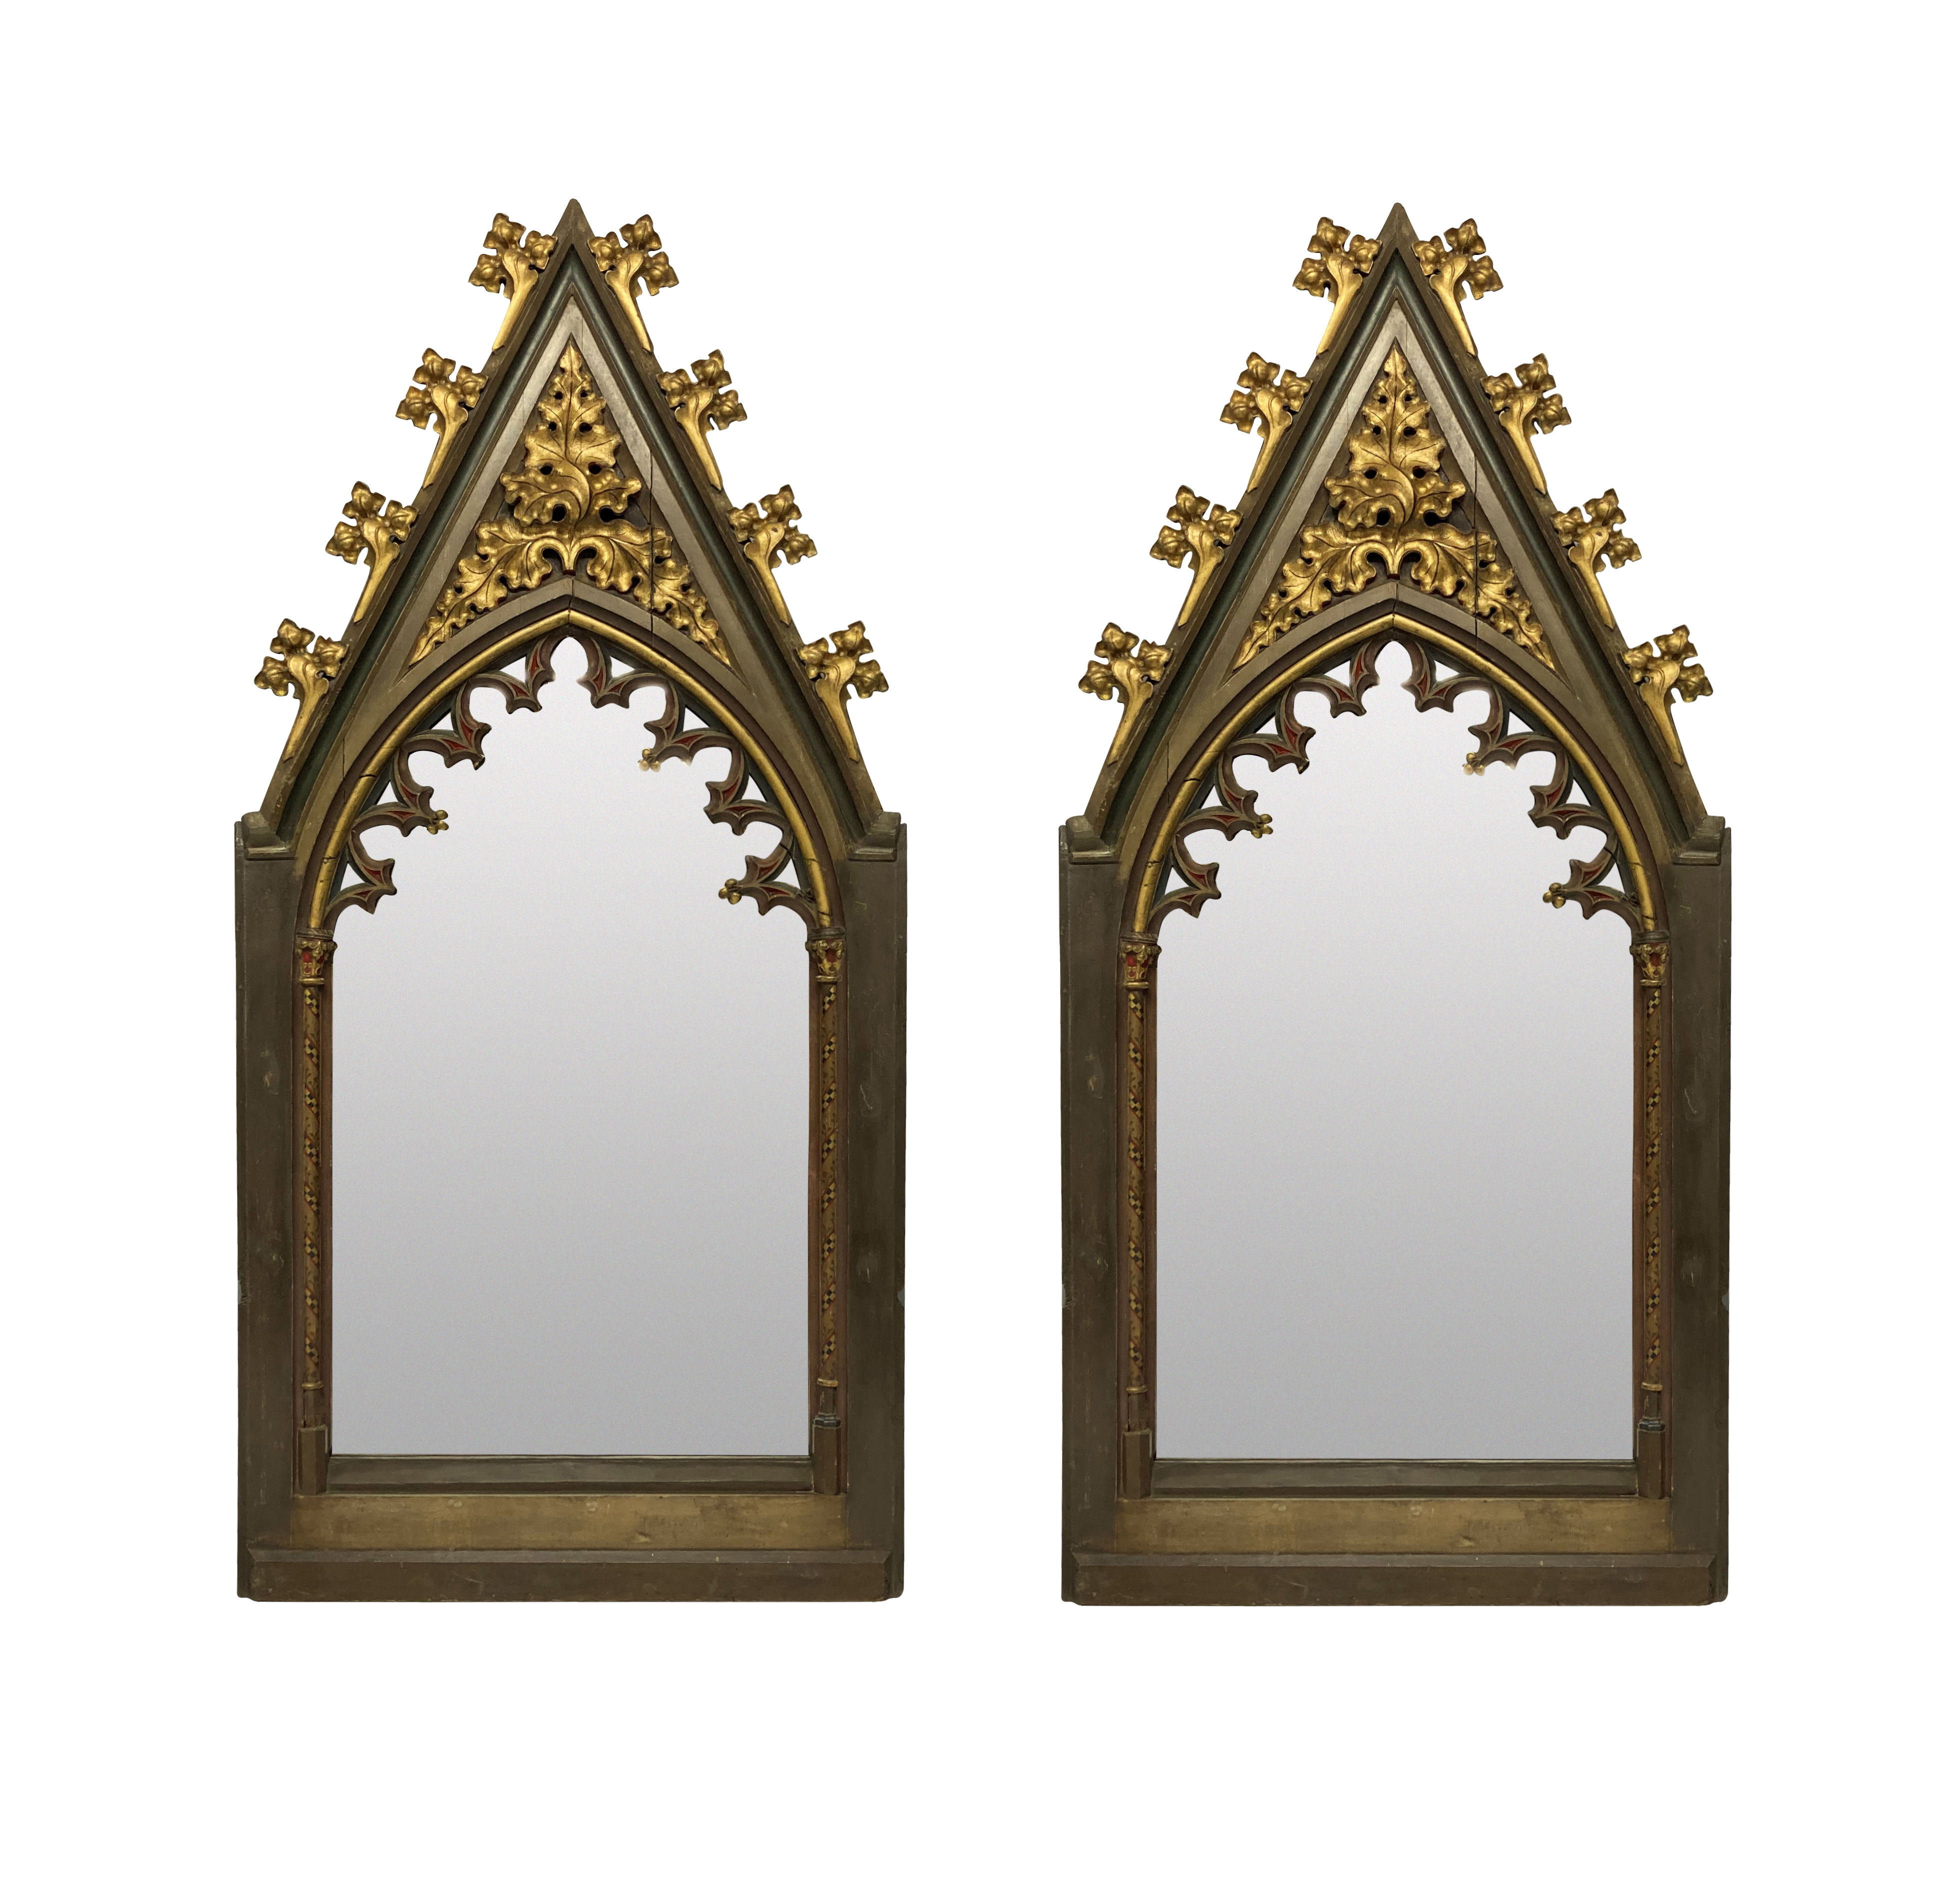 A PAIR OF LARGE EARLY XIX CENTURY ENGLISH GOTHIC REVIVAL MIRRORS